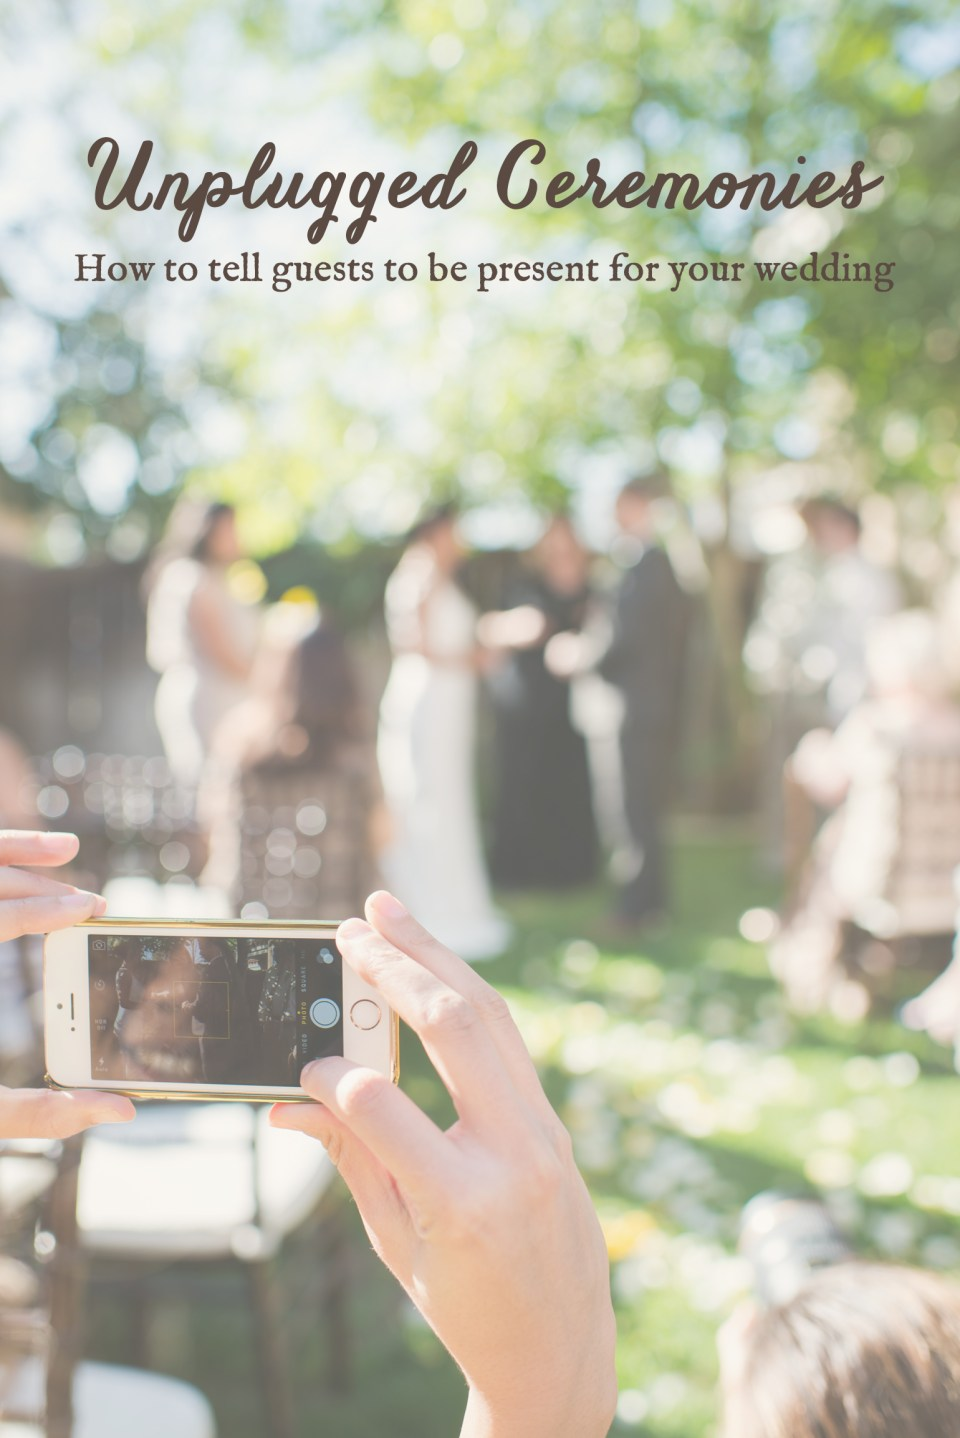 how to tell guests to turn their phones off during weddings